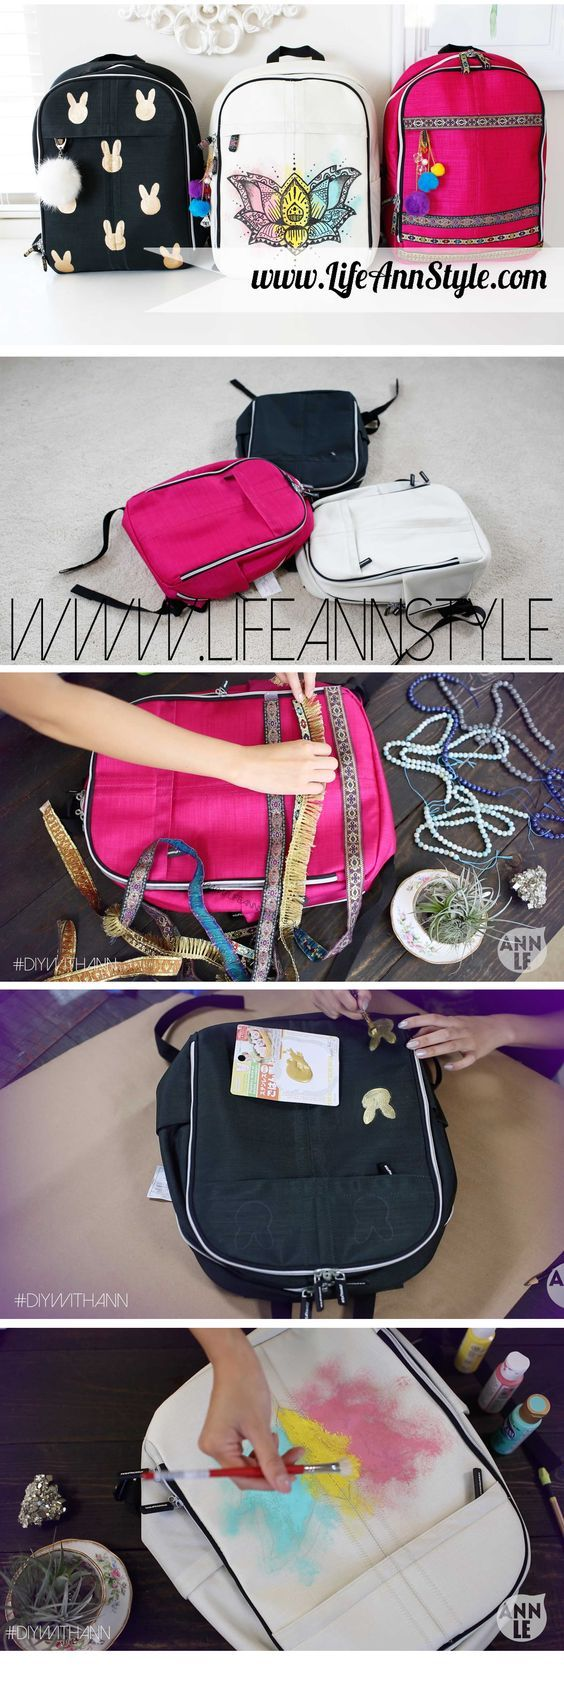 Diy How To Make Backpack Designs!!  Lifestyle Back To School #backtoschool